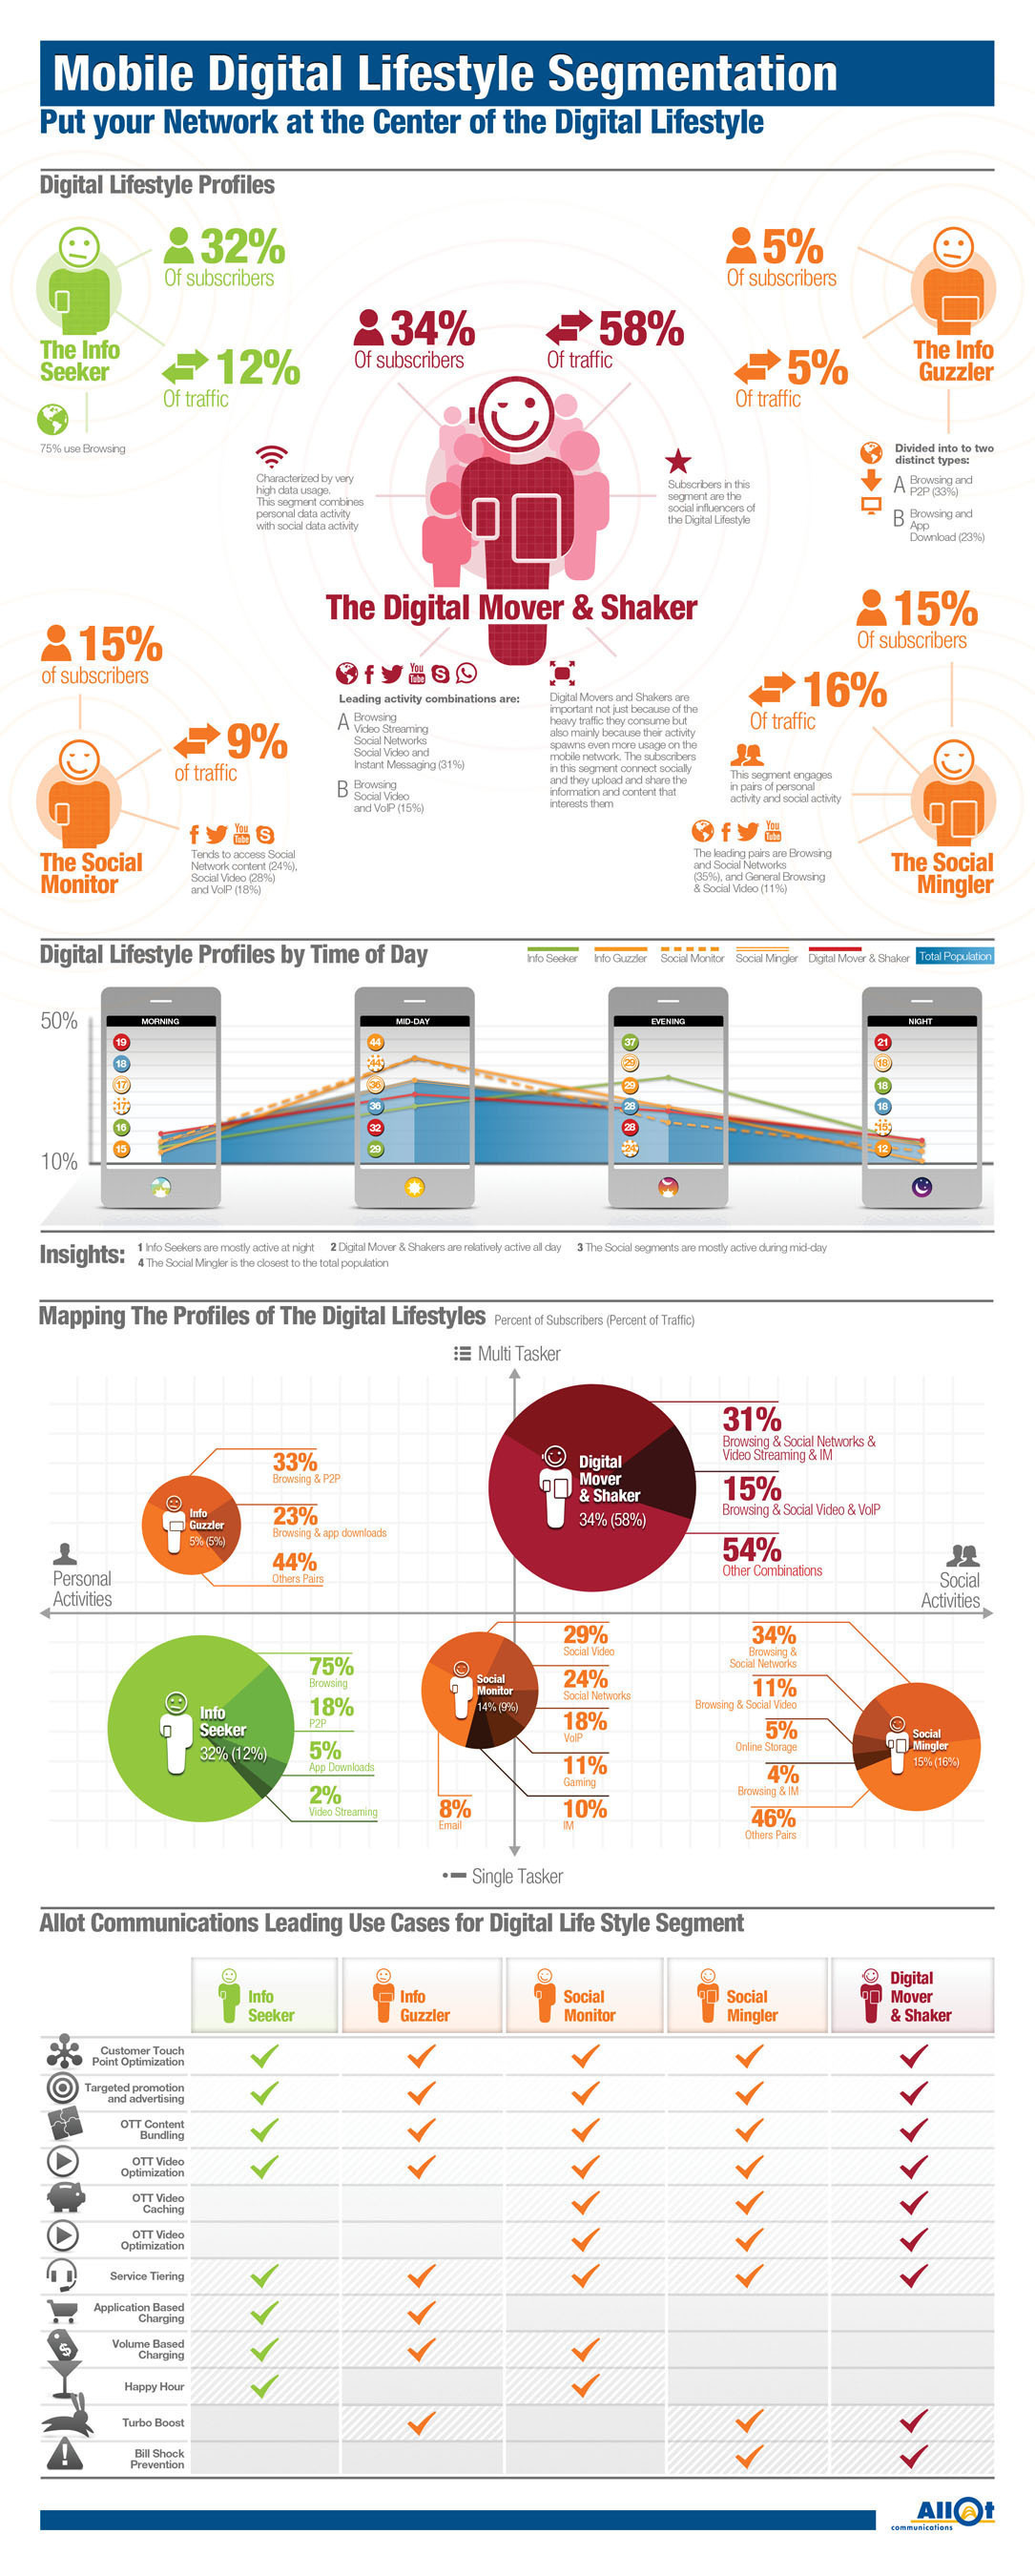 Allot MobileTrends Report Highlights Segments in the Mobile Digital Lifestyle